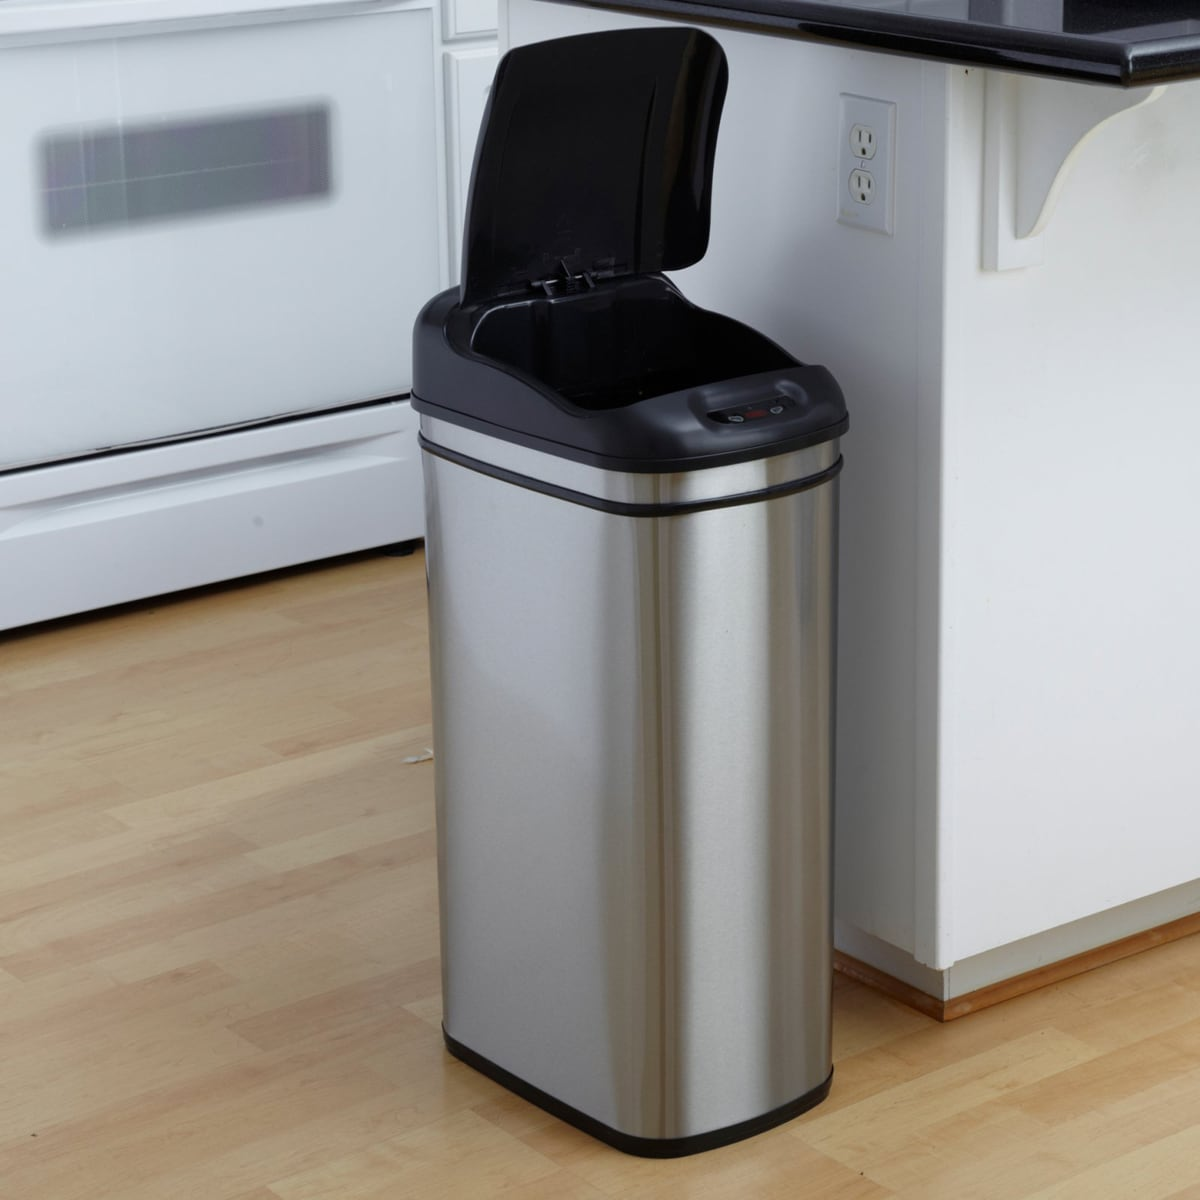 Kitchen Trashcan: Best Budget Kitchen Trash Cans